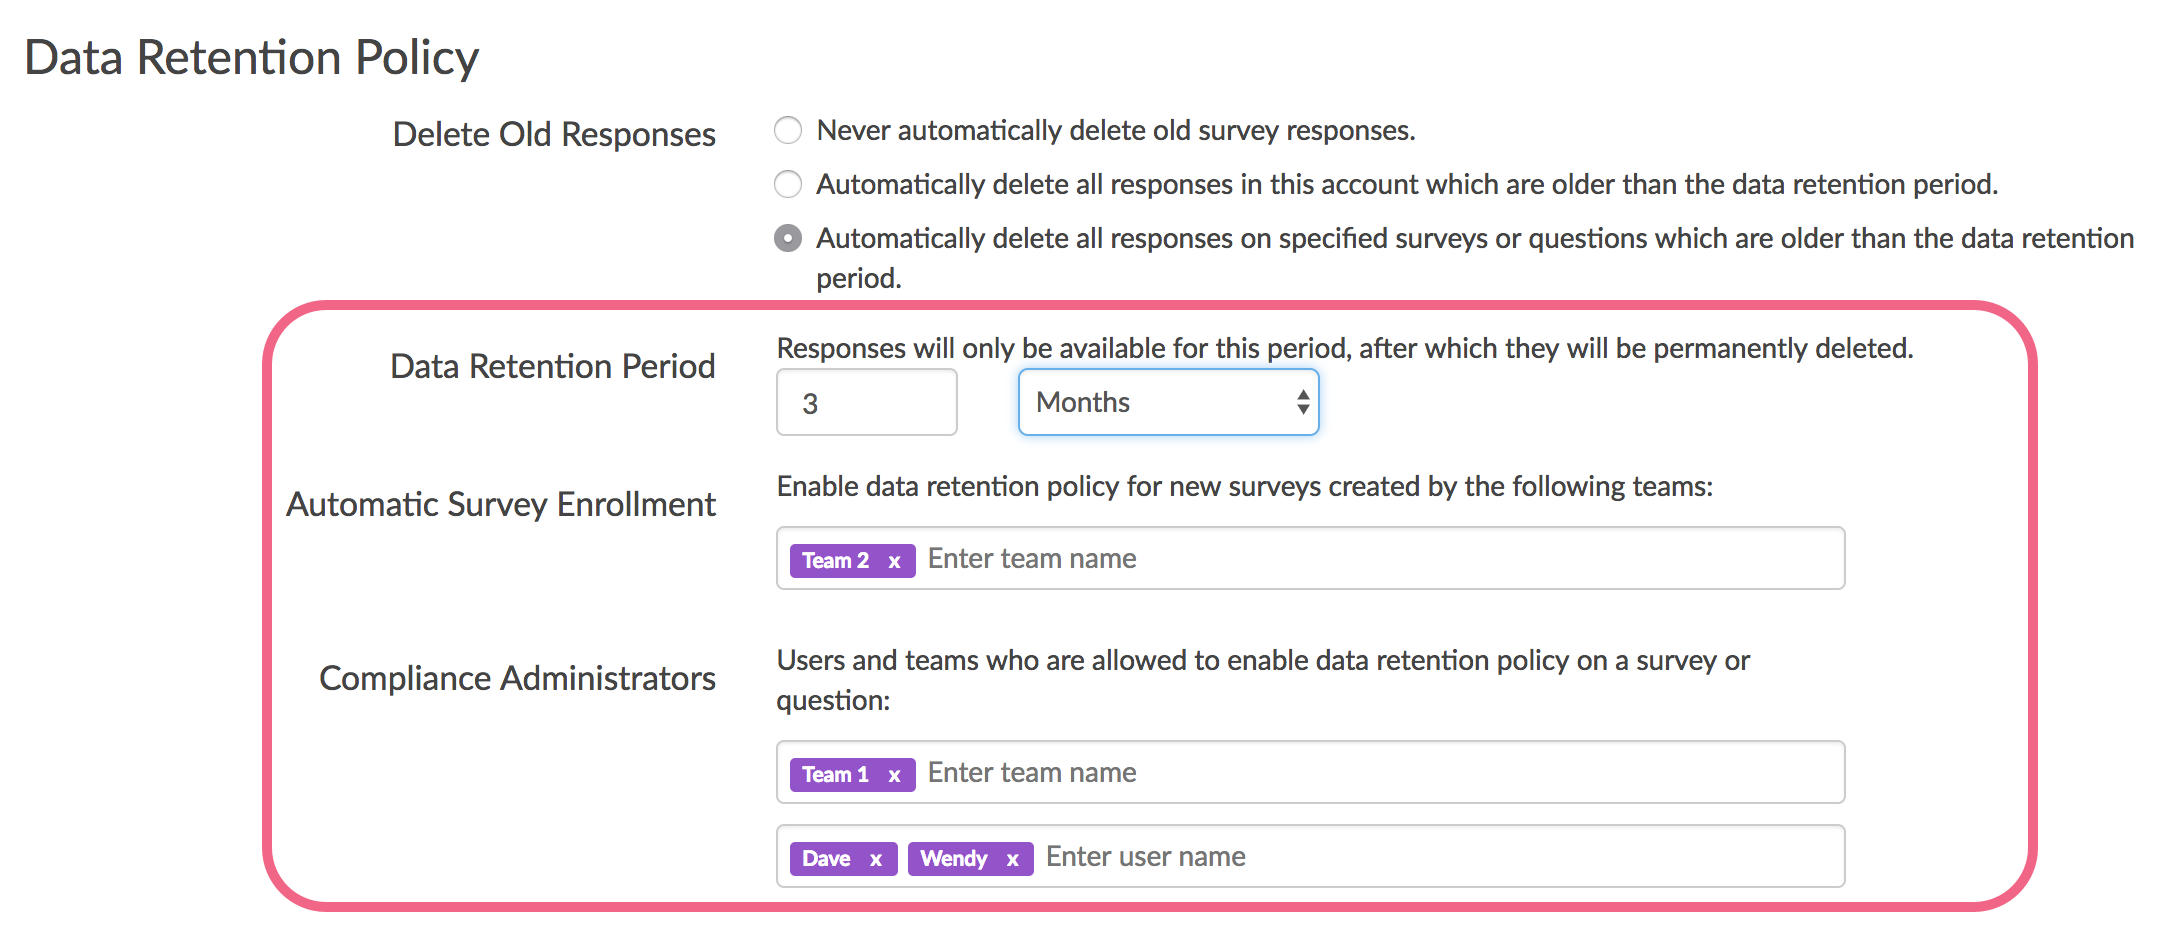 DRP Setting: Set up automatic enrollment and Compliance Administrators